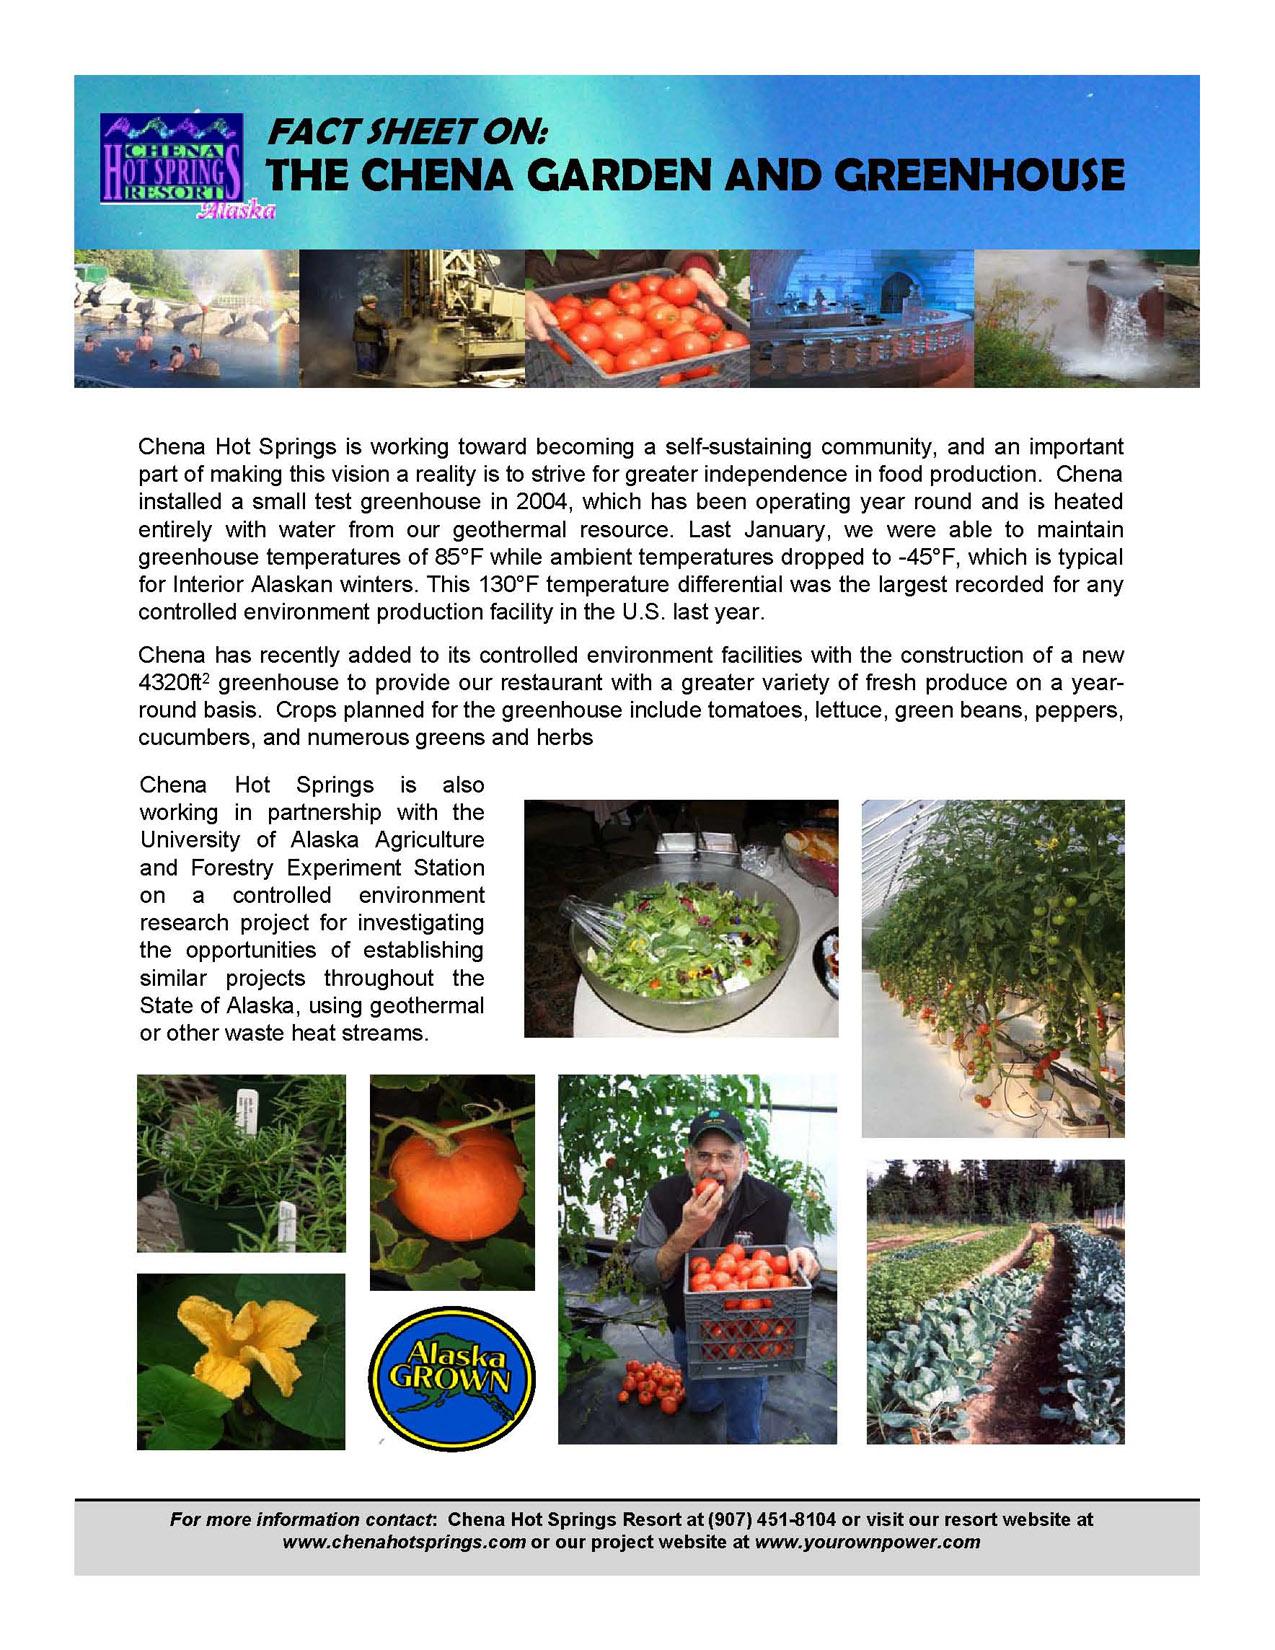 Greenhousefactsheet